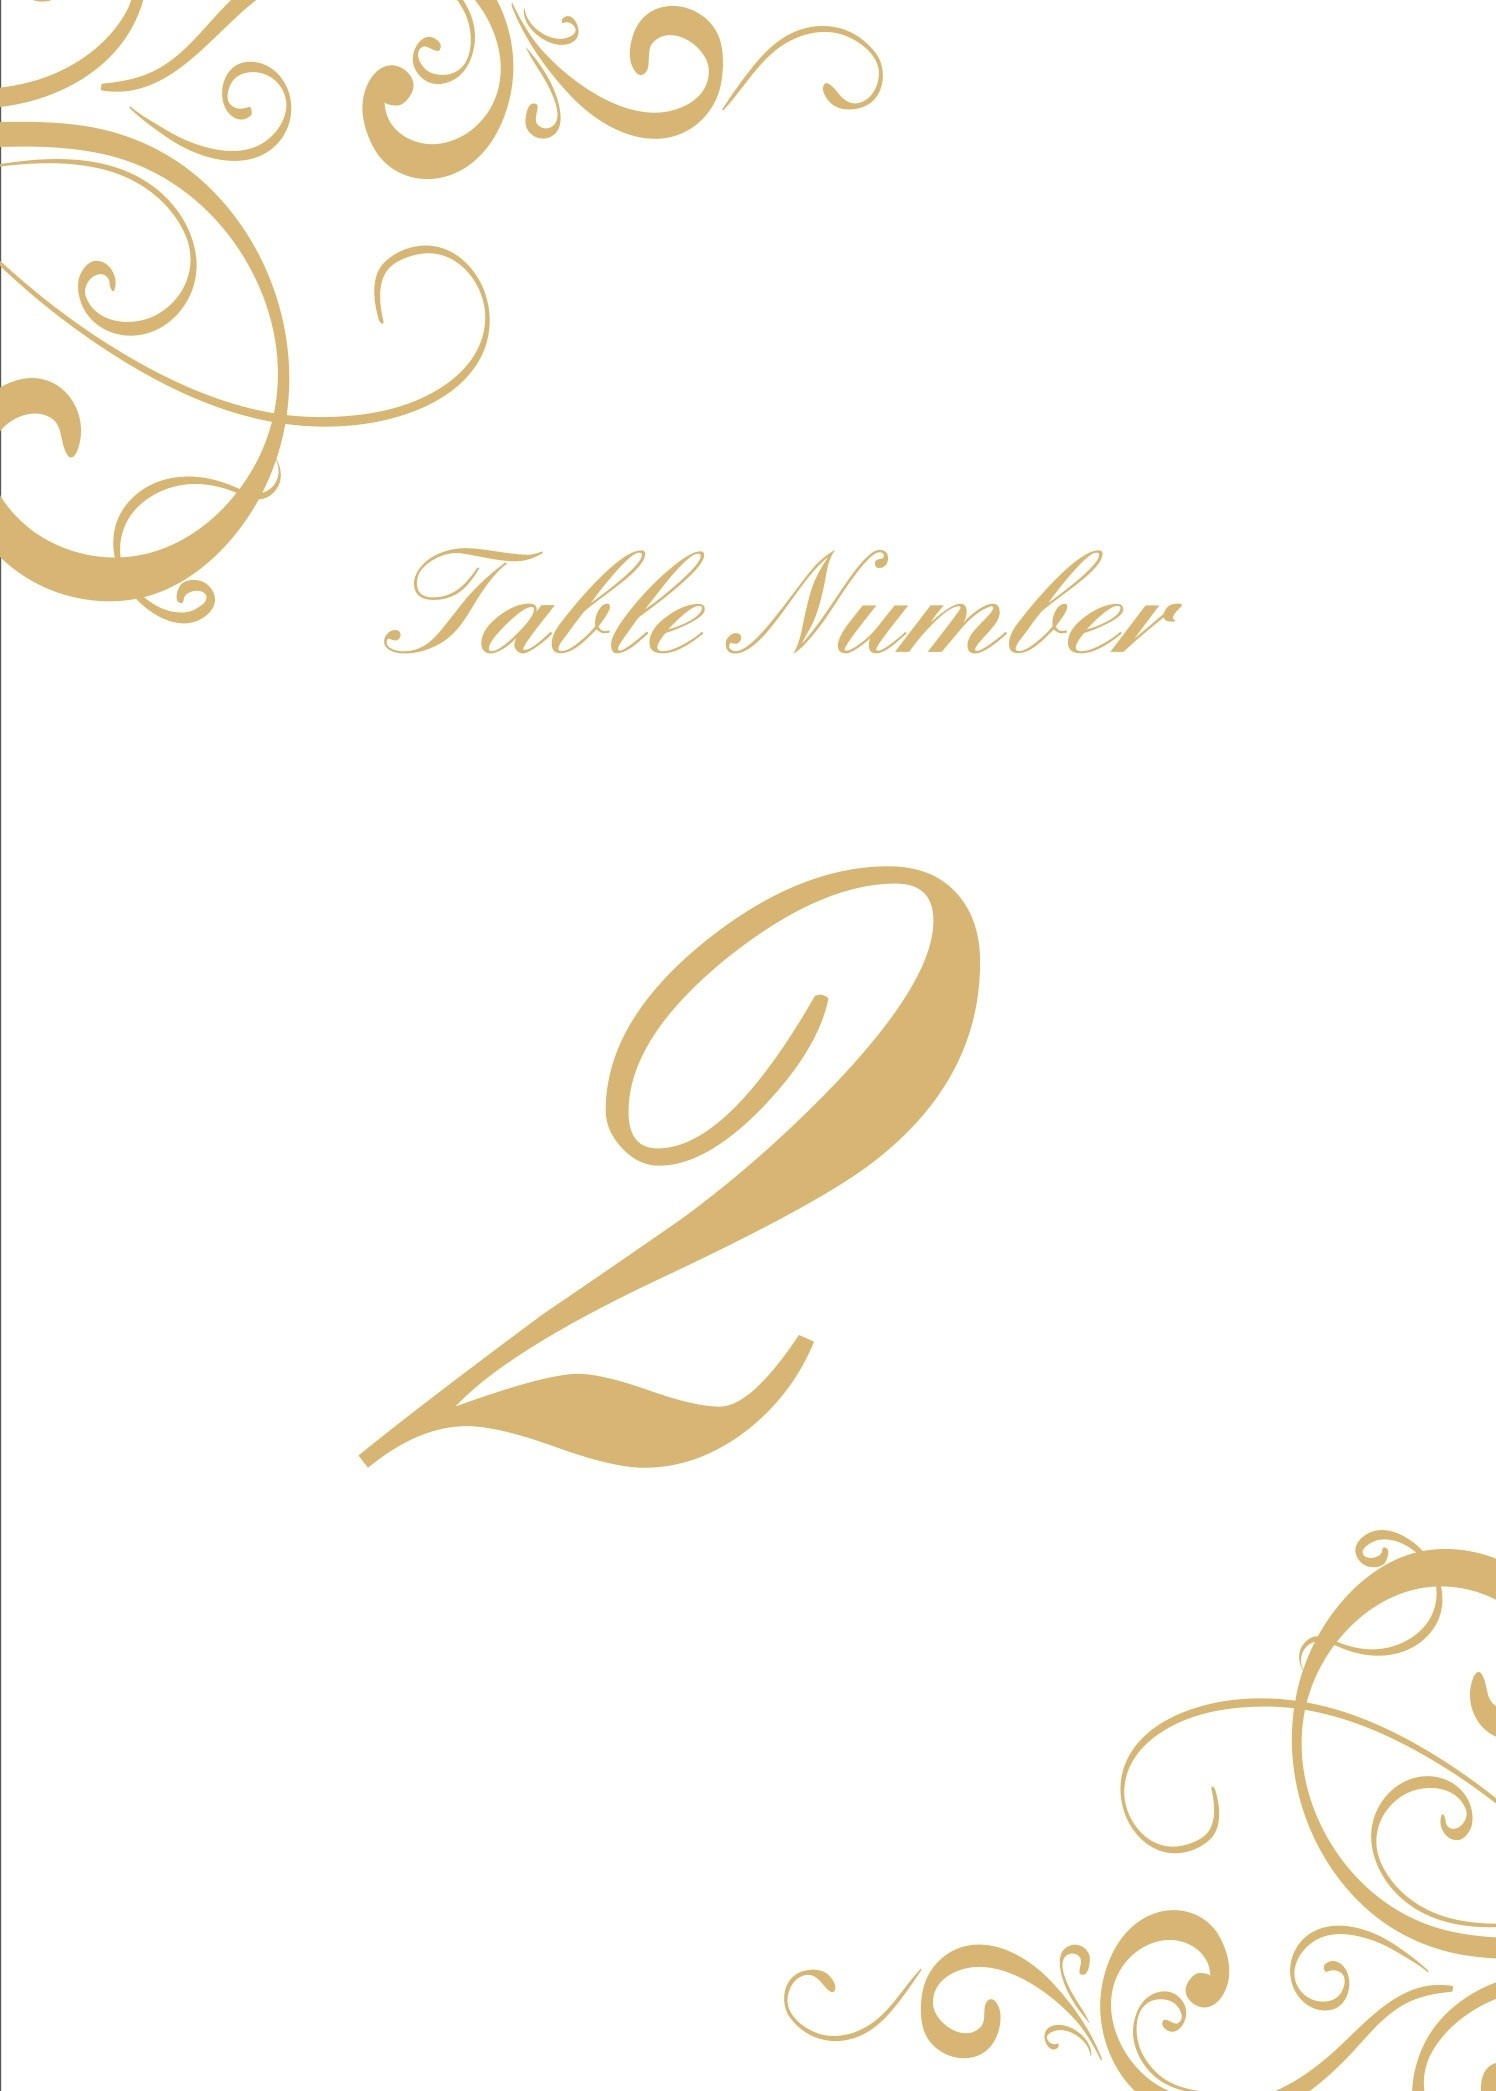 28 Elegant Printable Table Numbers | Kittybabylove - Free Printable Table Numbers